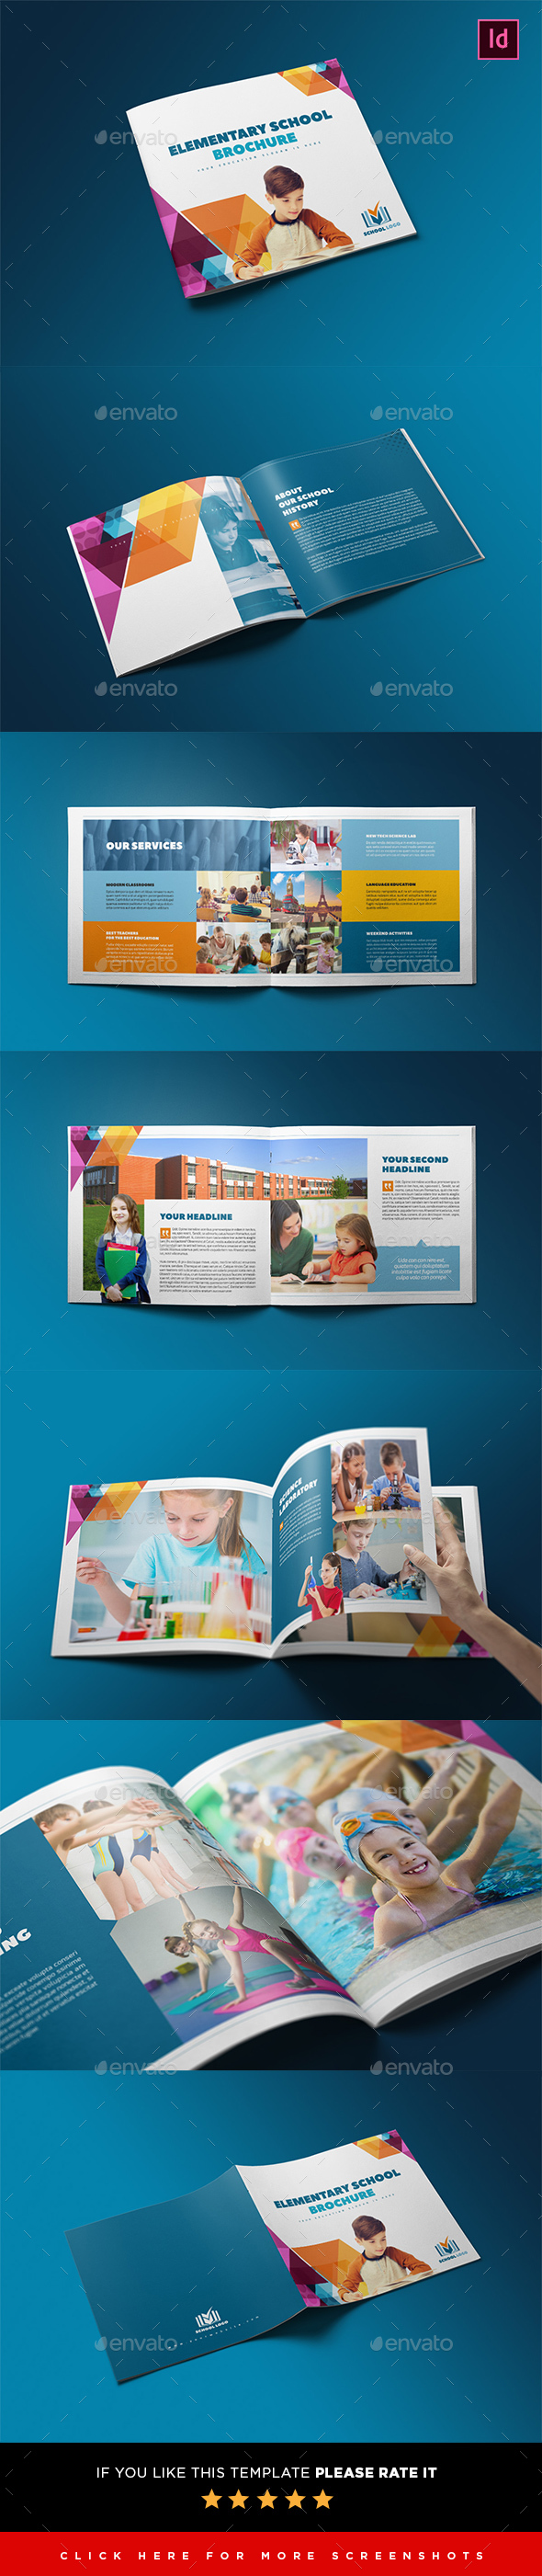 elementary school brochure template - elementary school brochure template by interado graphicriver